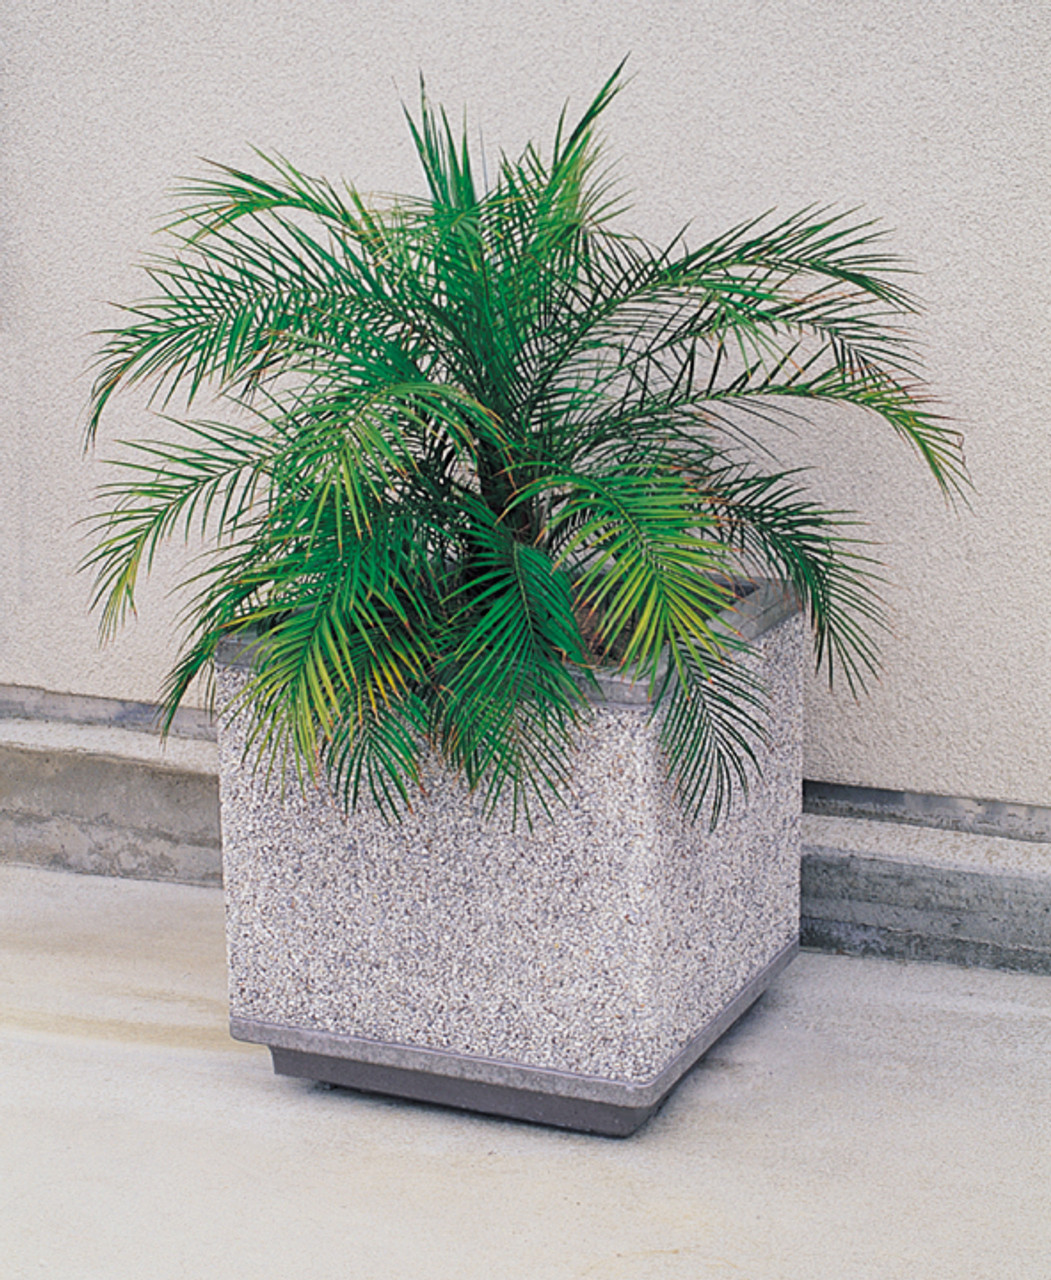 Outdoor Square Concrete Planter TF4185 with Fern Exposed Aggregate